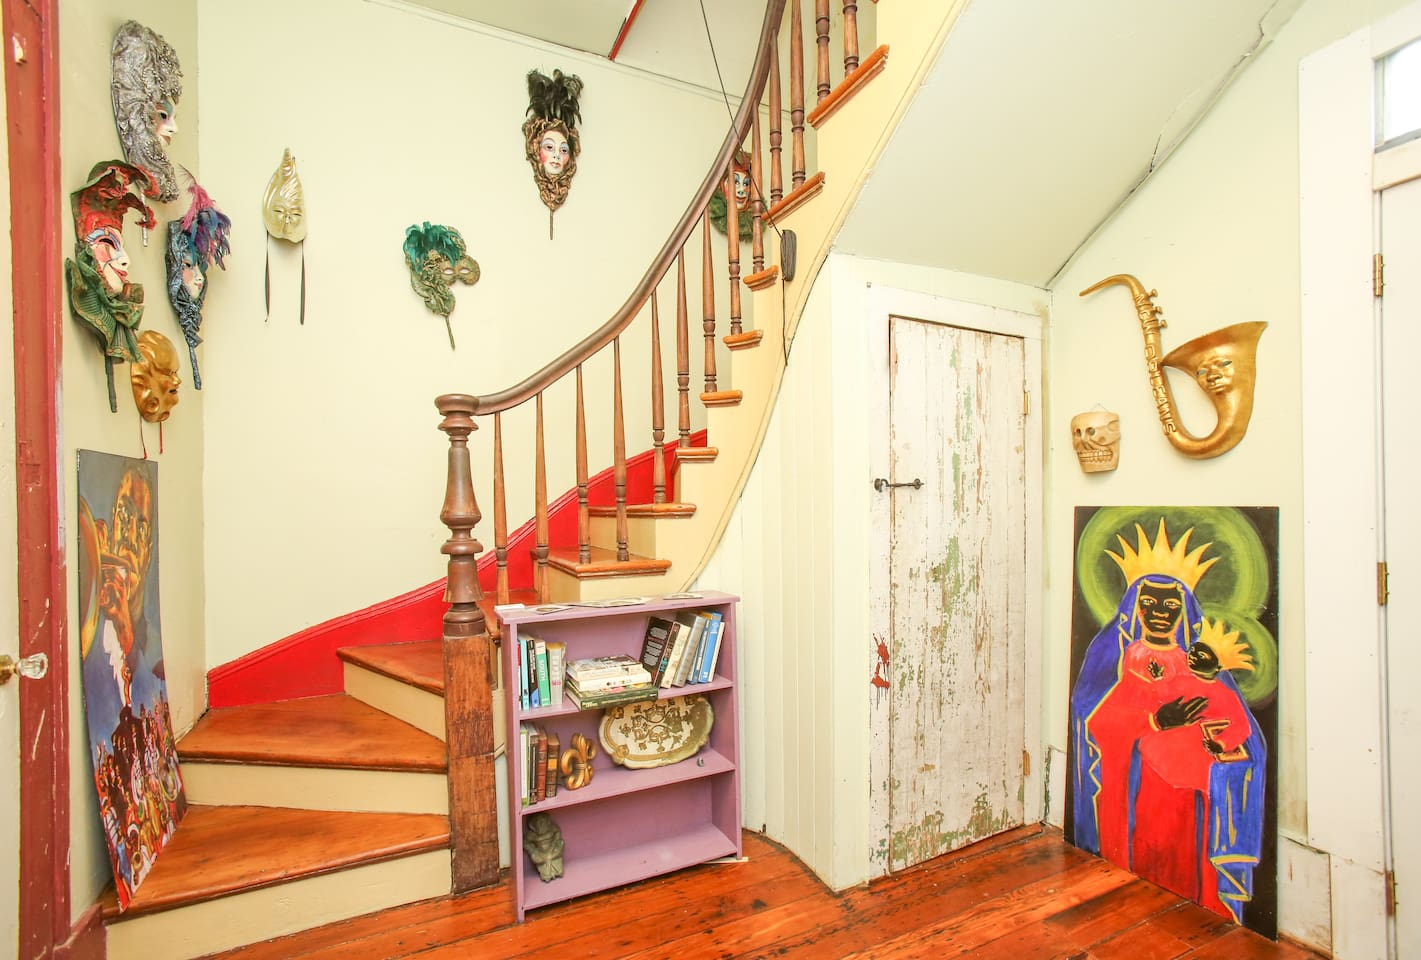 Colorful stairwell filled with local art.